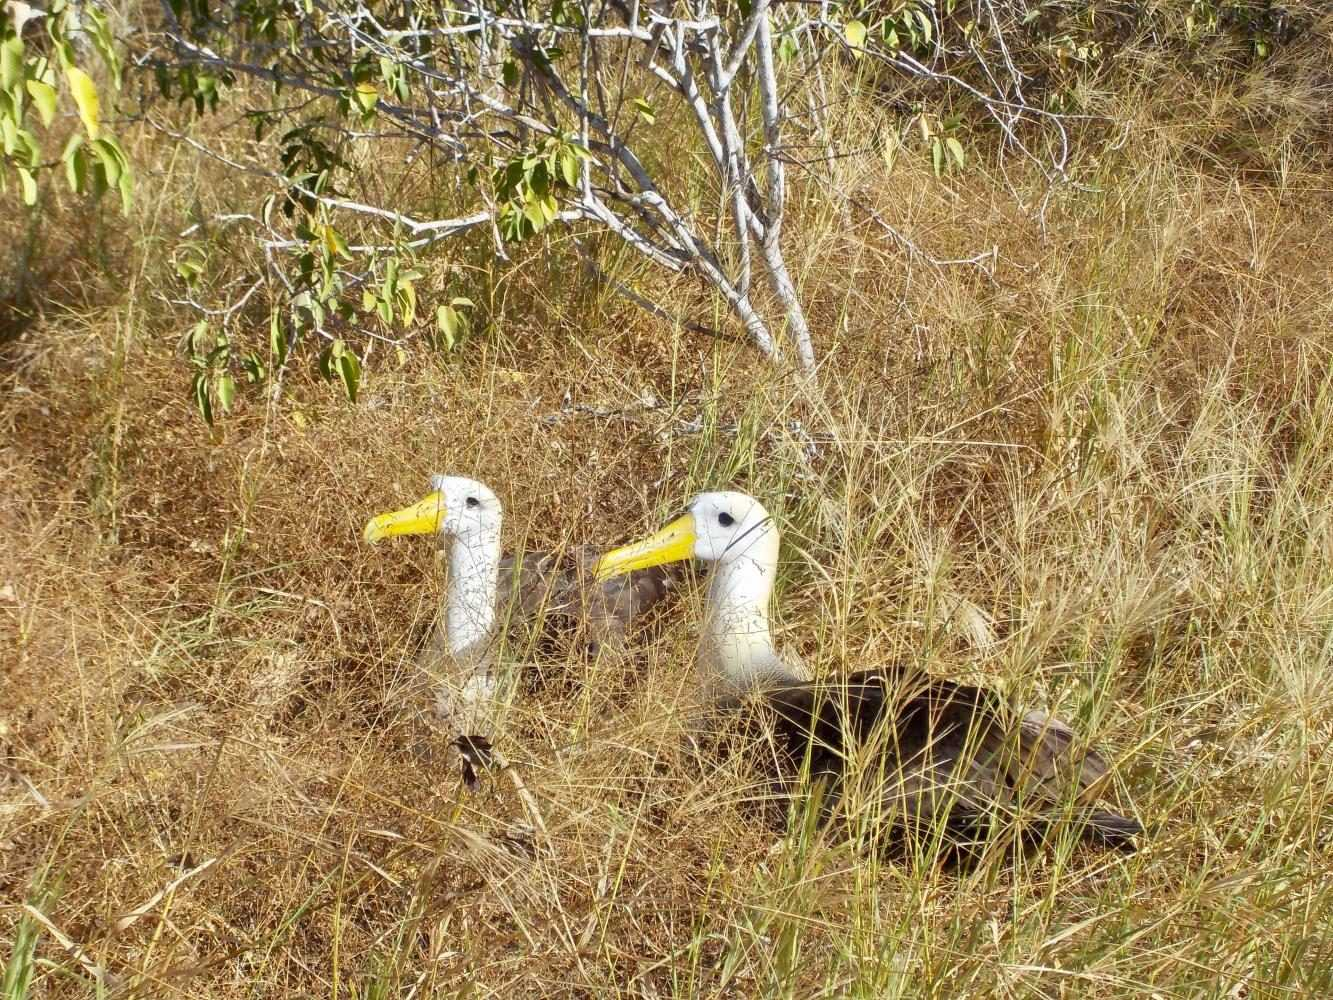 Two birds rest together on the islands. Photo from Bailey Raso.